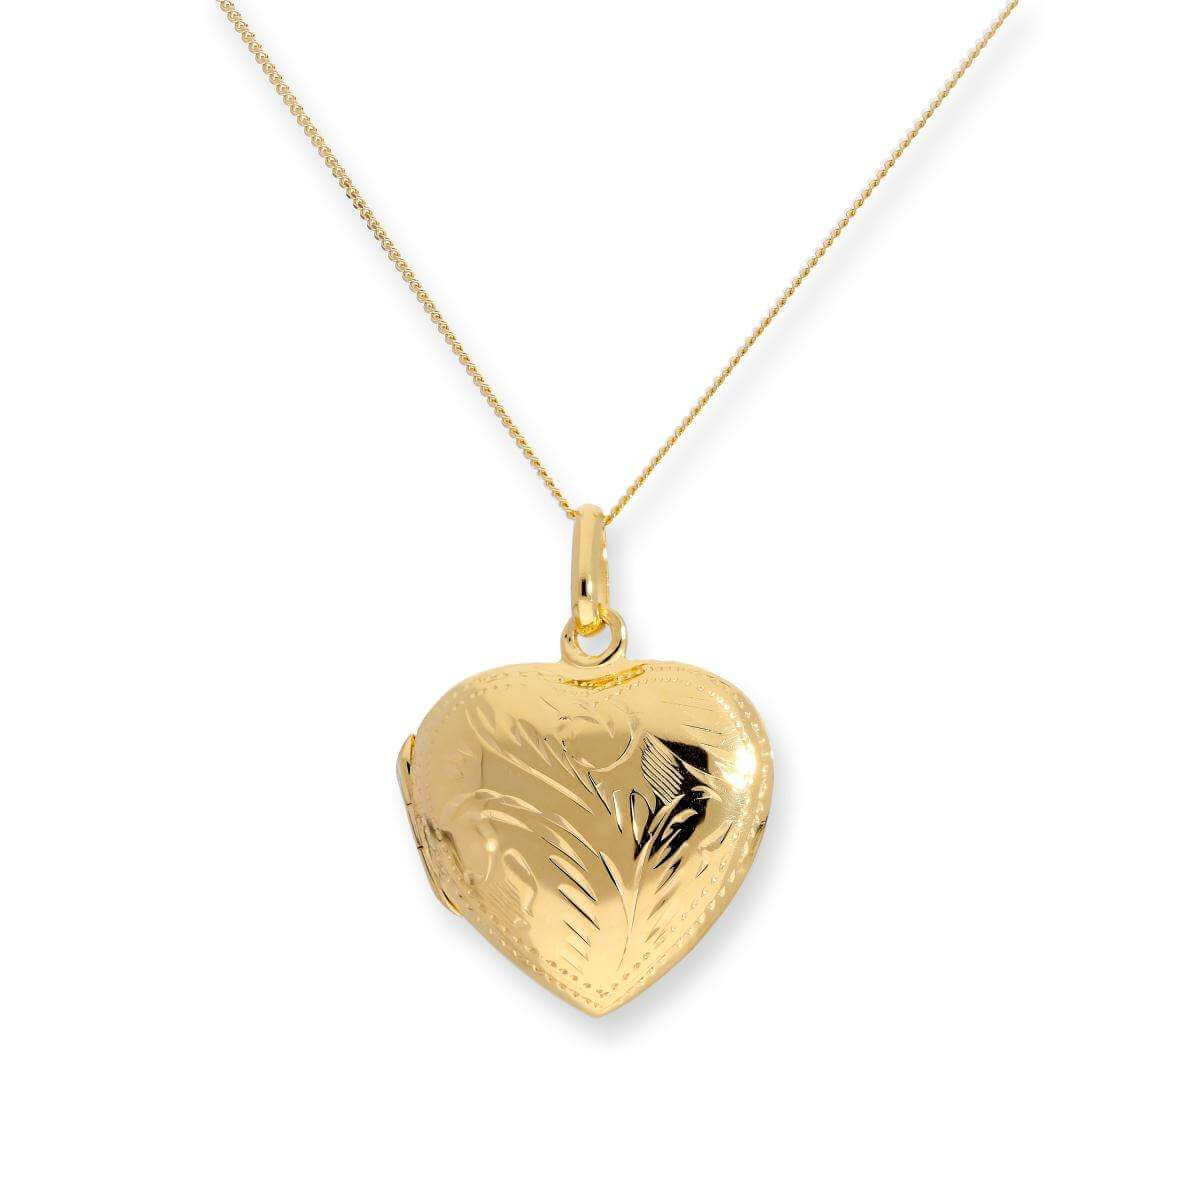 Gold Dipped Sterling Silver Engraved Heart Locket on Chain 16 - 22 Inches